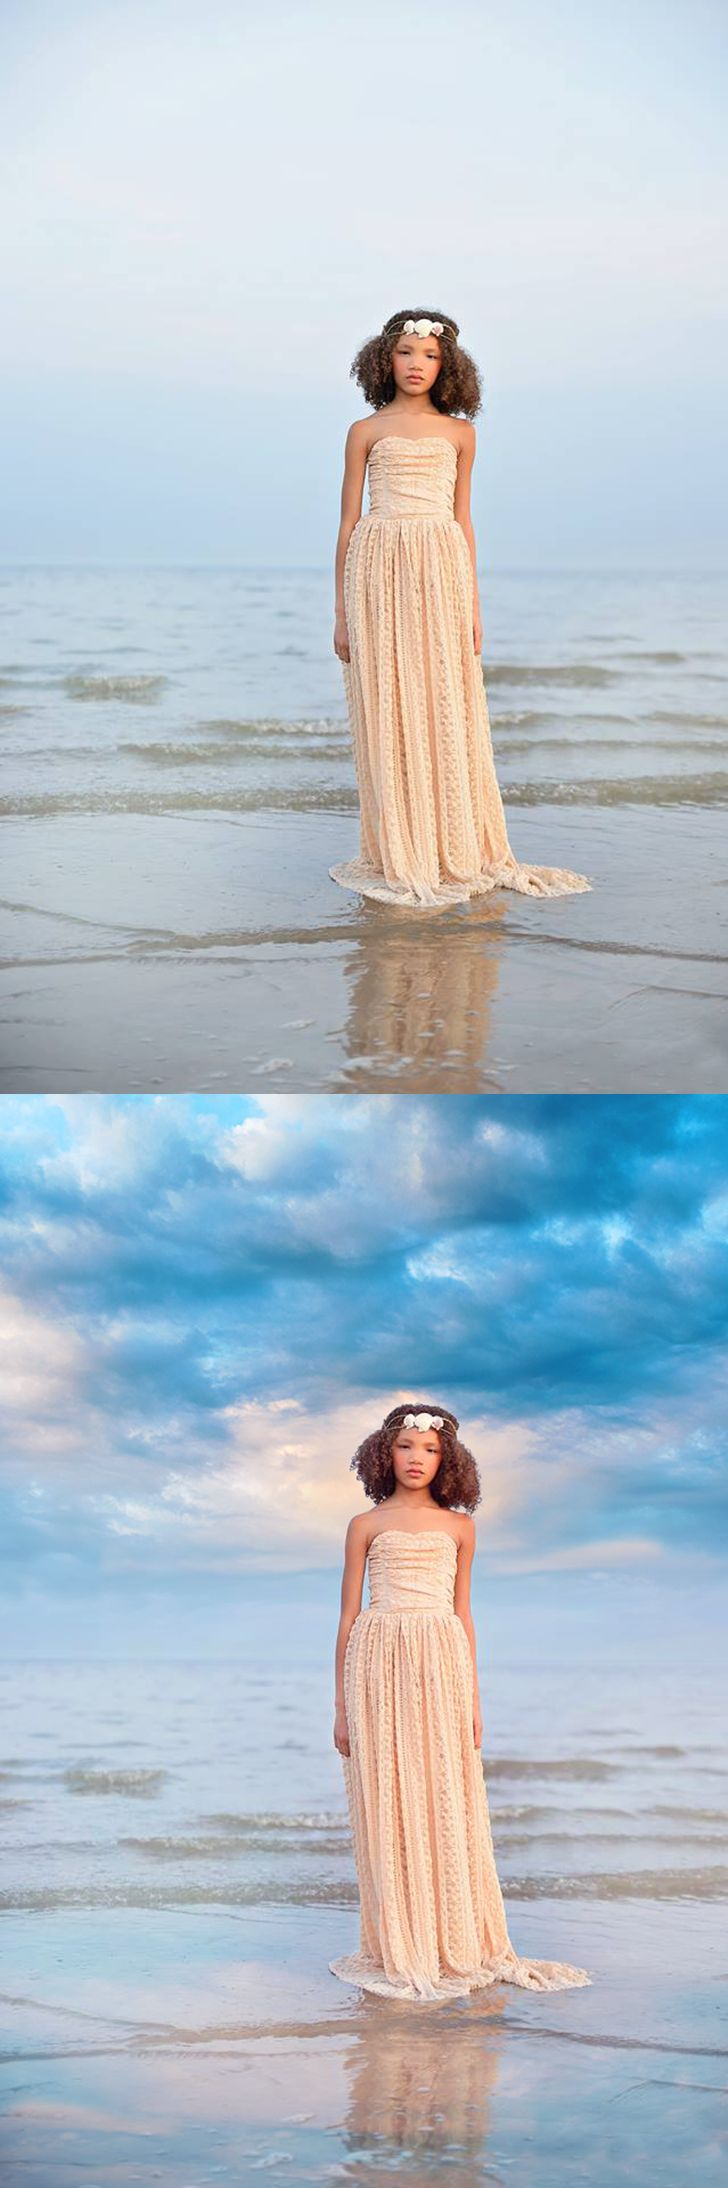 Before and after using Summerana Skies #Overlay and #Action Collection for both…